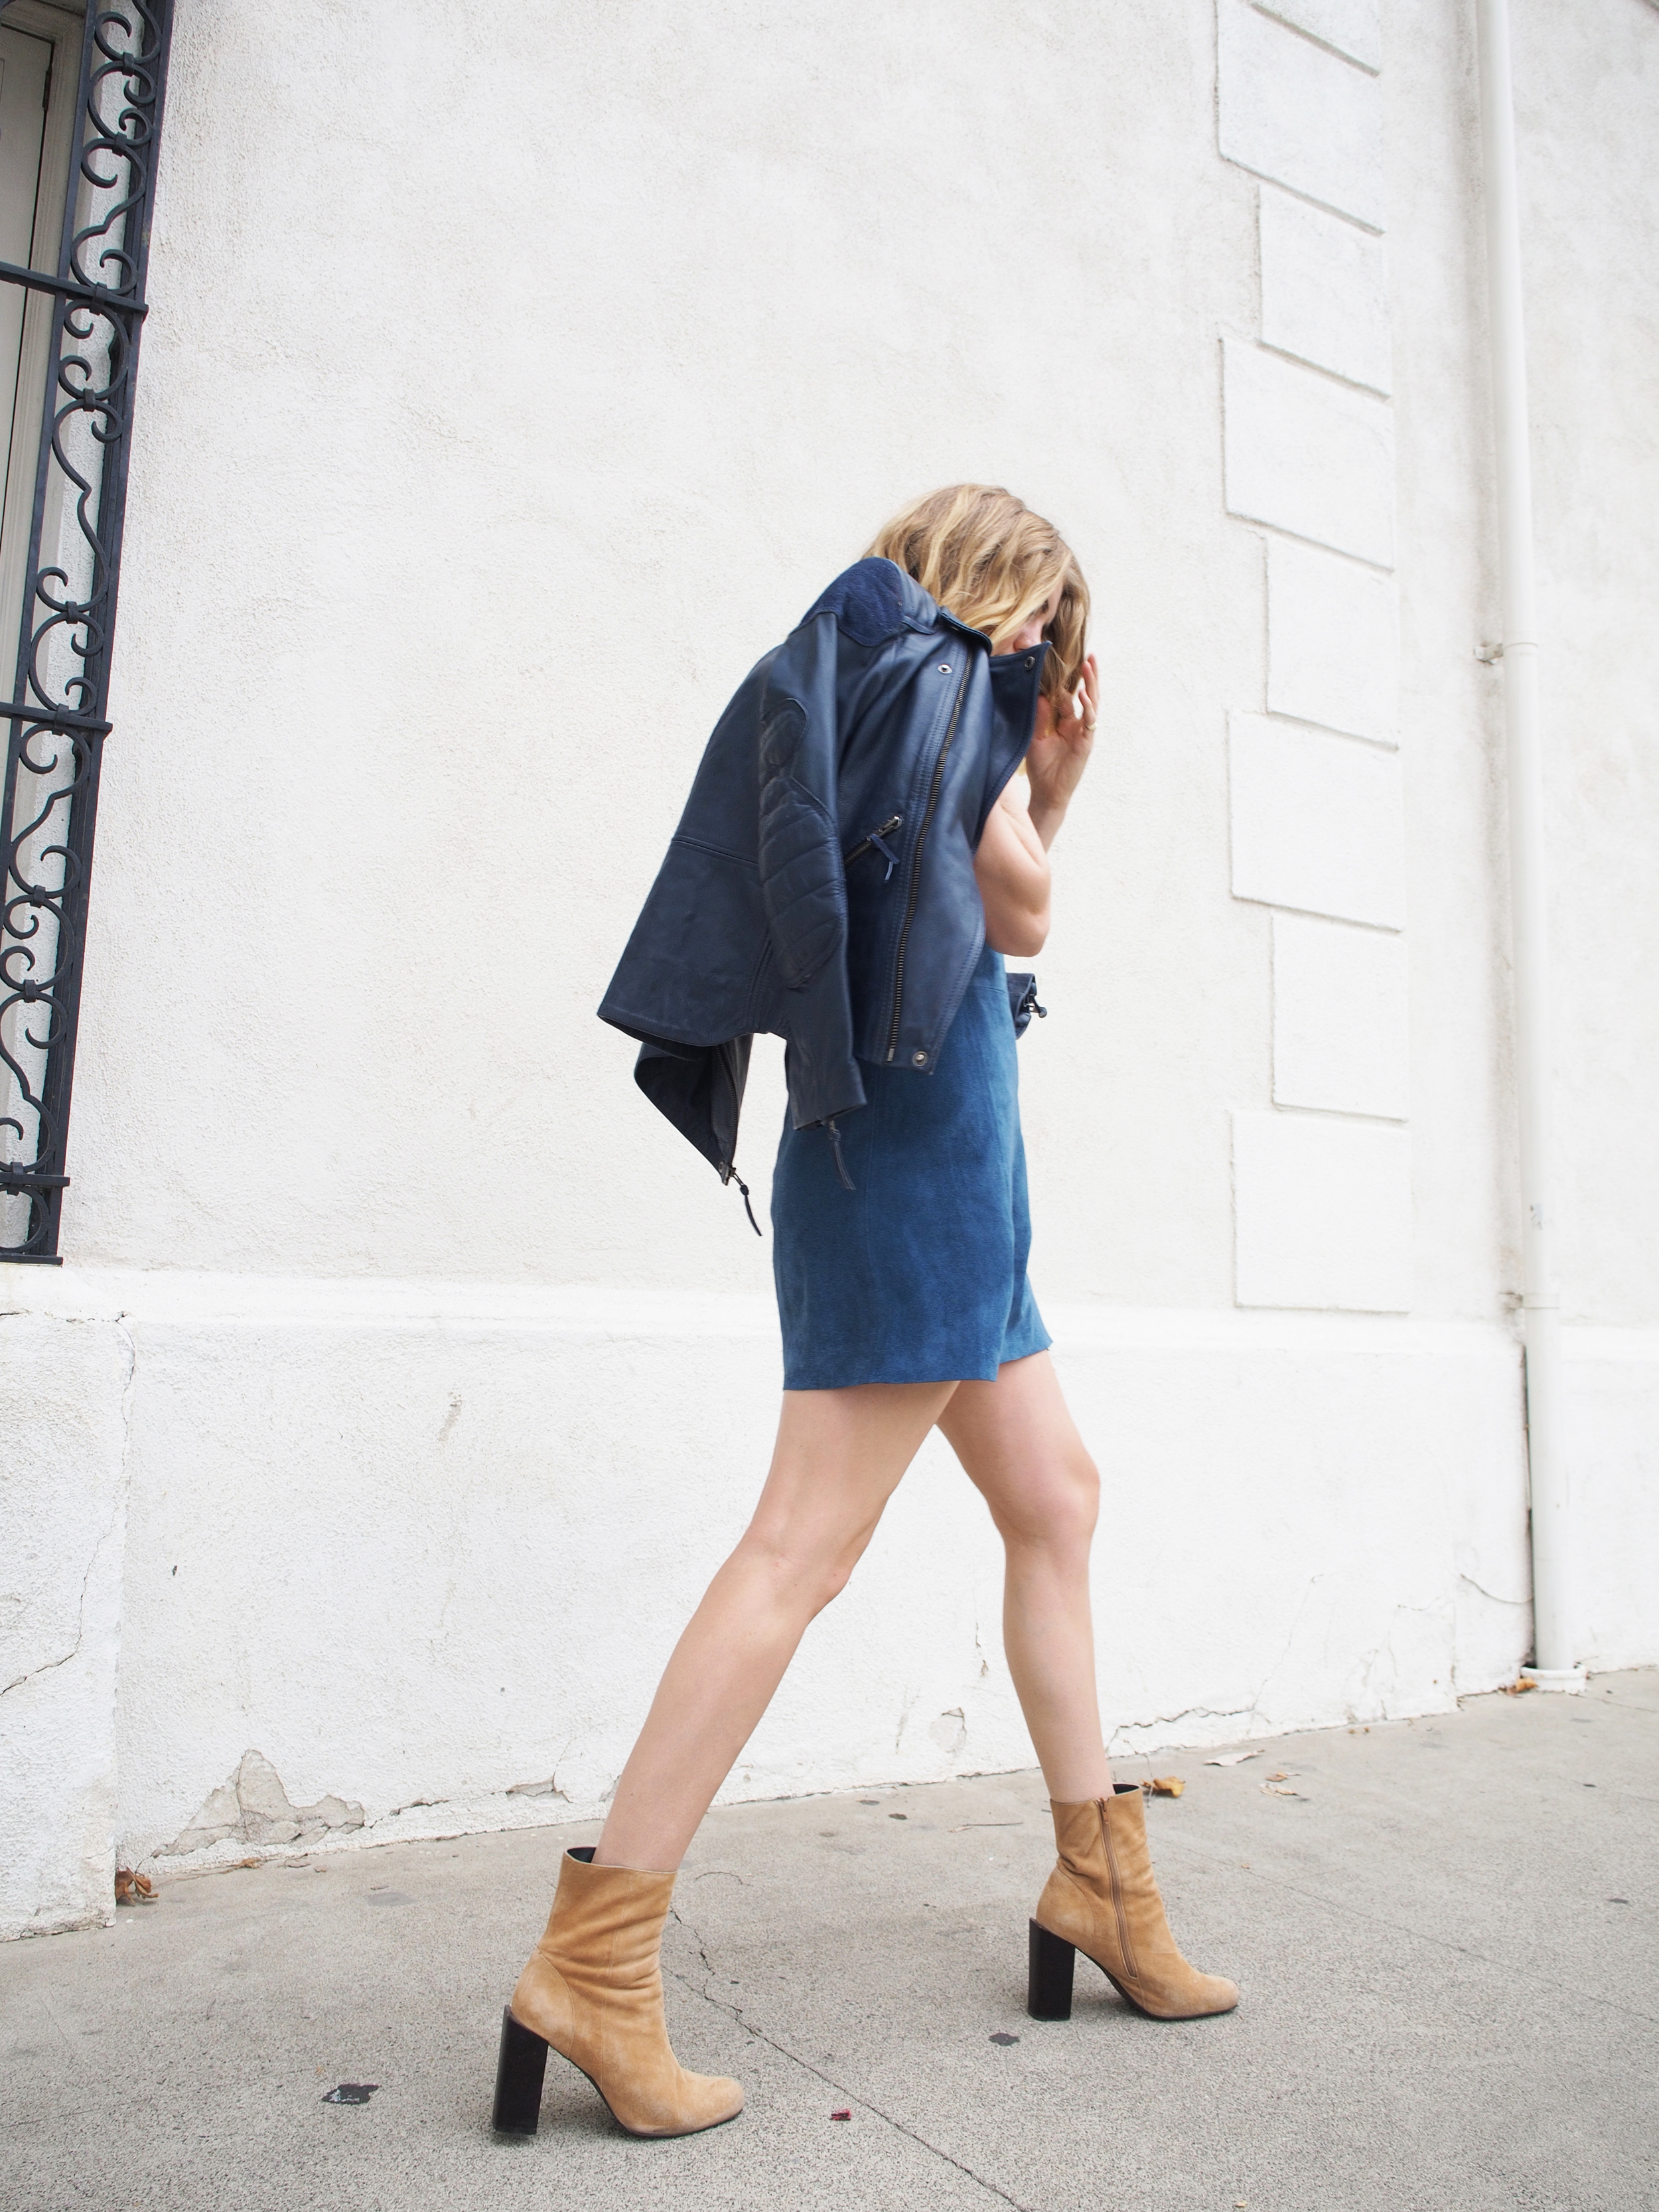 M.i.h. Jeans Lorca Suede Dress Acne Leather Jacket Jeffrey Campbell Suede Boots Street Style x Taylr Anne